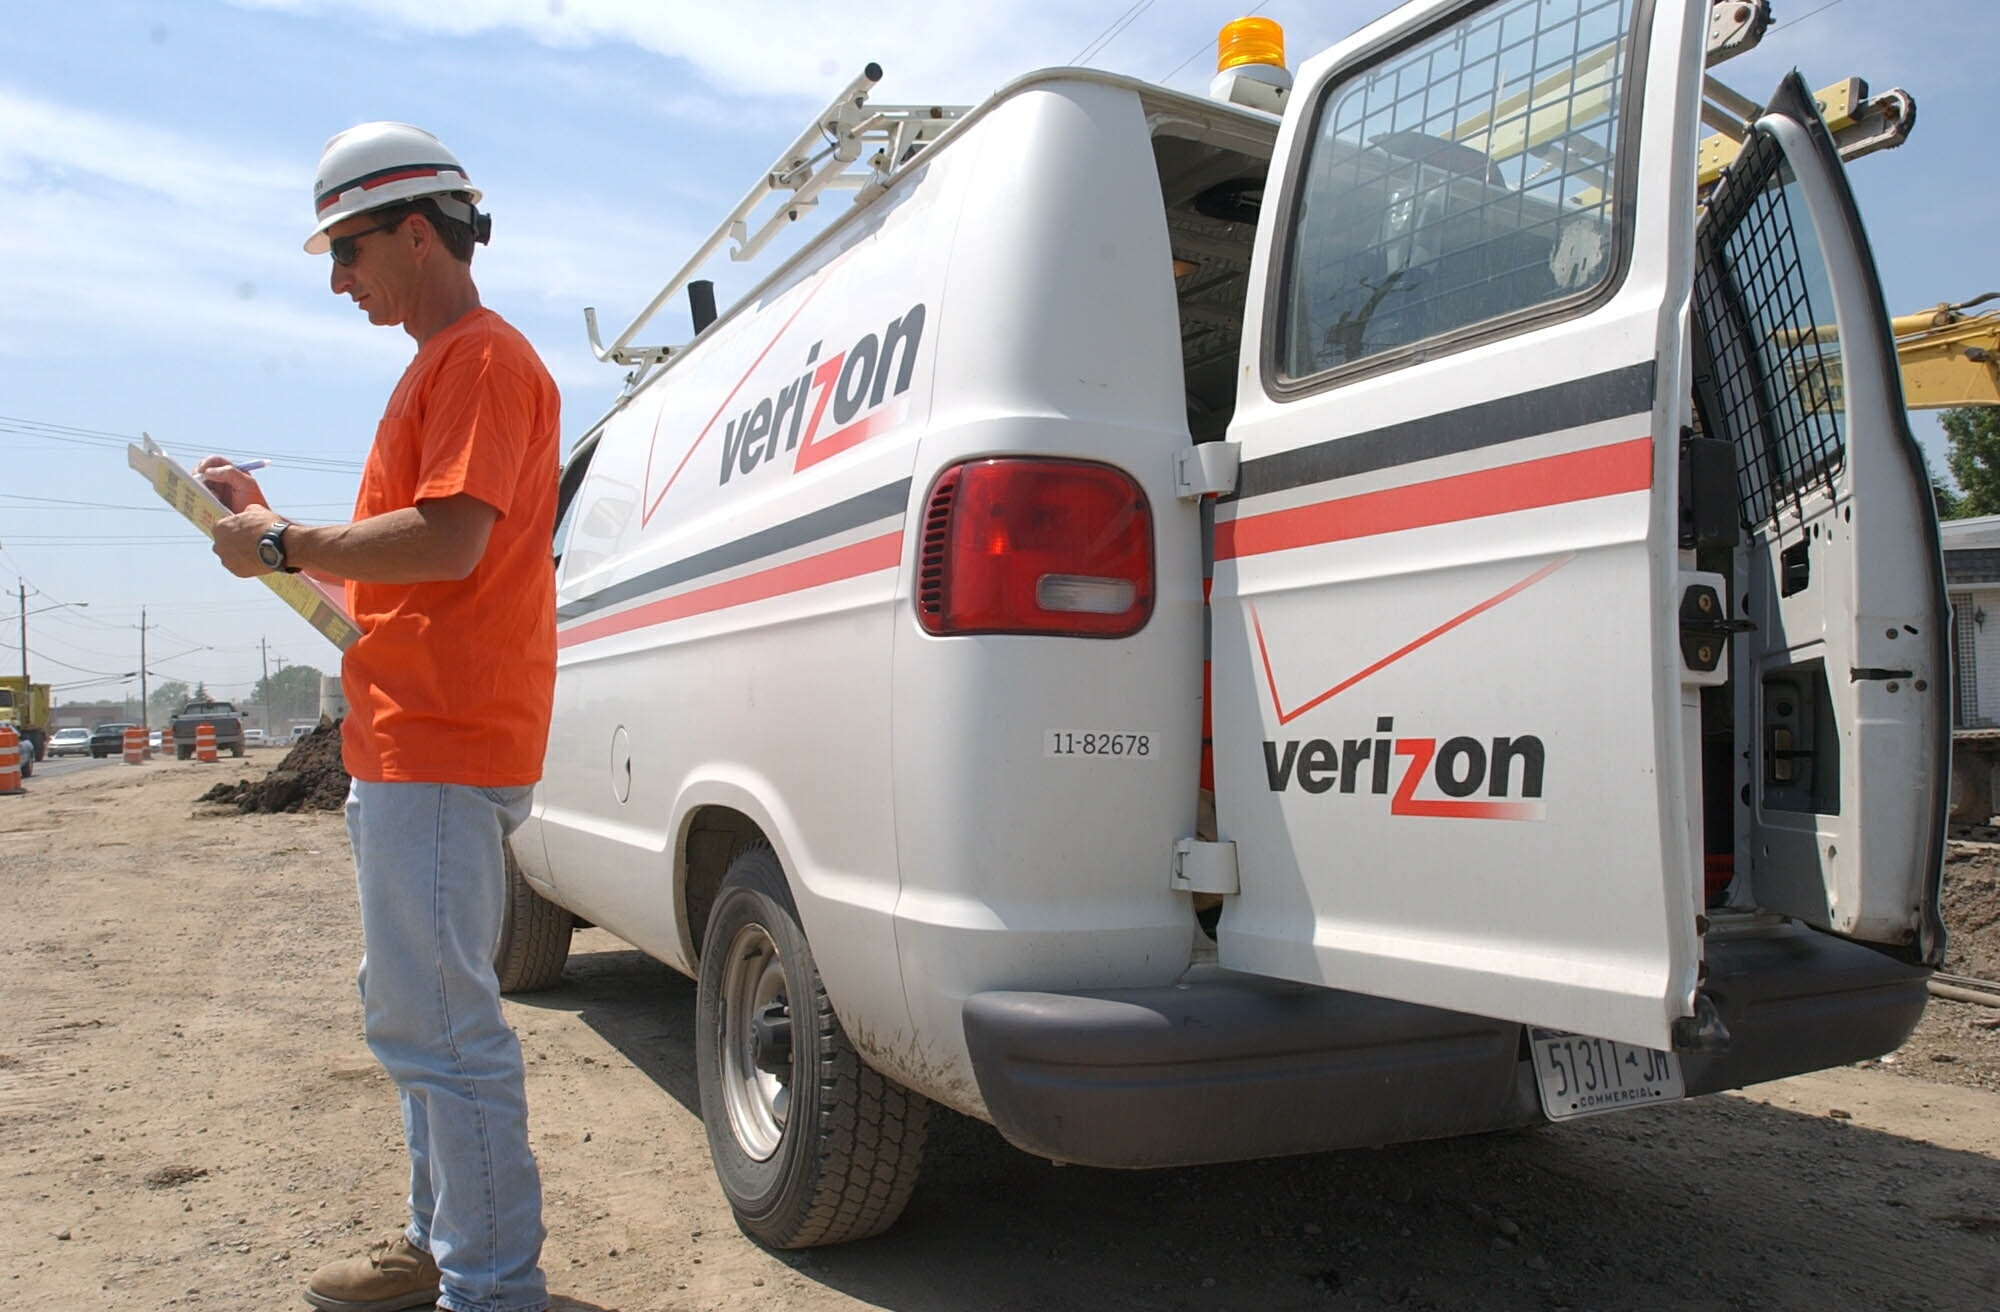 Local Verizon officials say don't blame them for Erie County's 911 system failure.